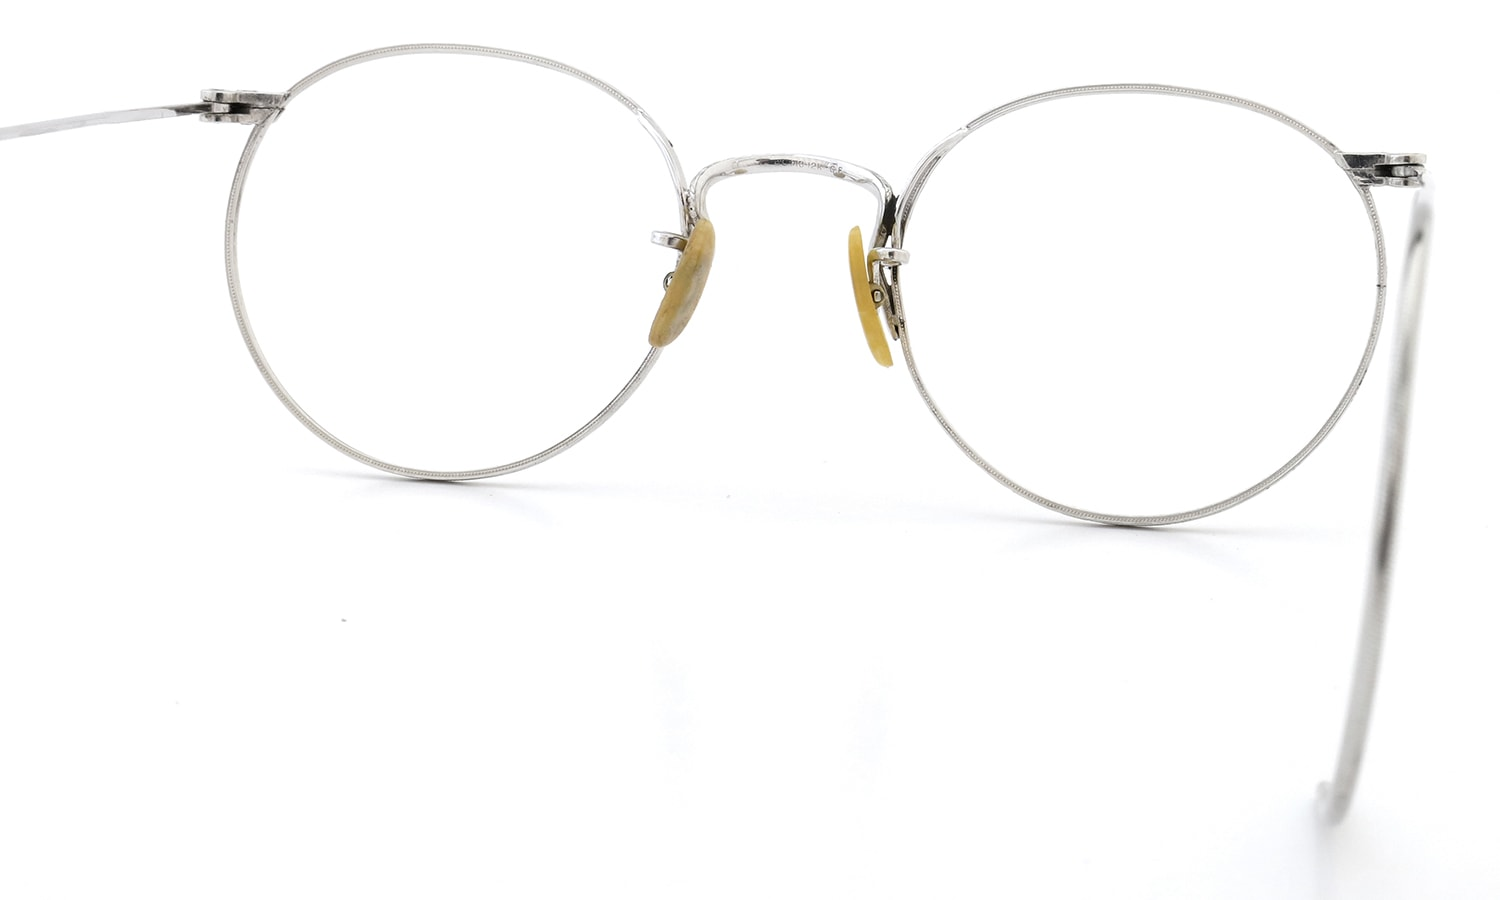 LOWRES OPTICAL 1930s~1940s BRACELEY 1/10 12KGF WHITE 42-20